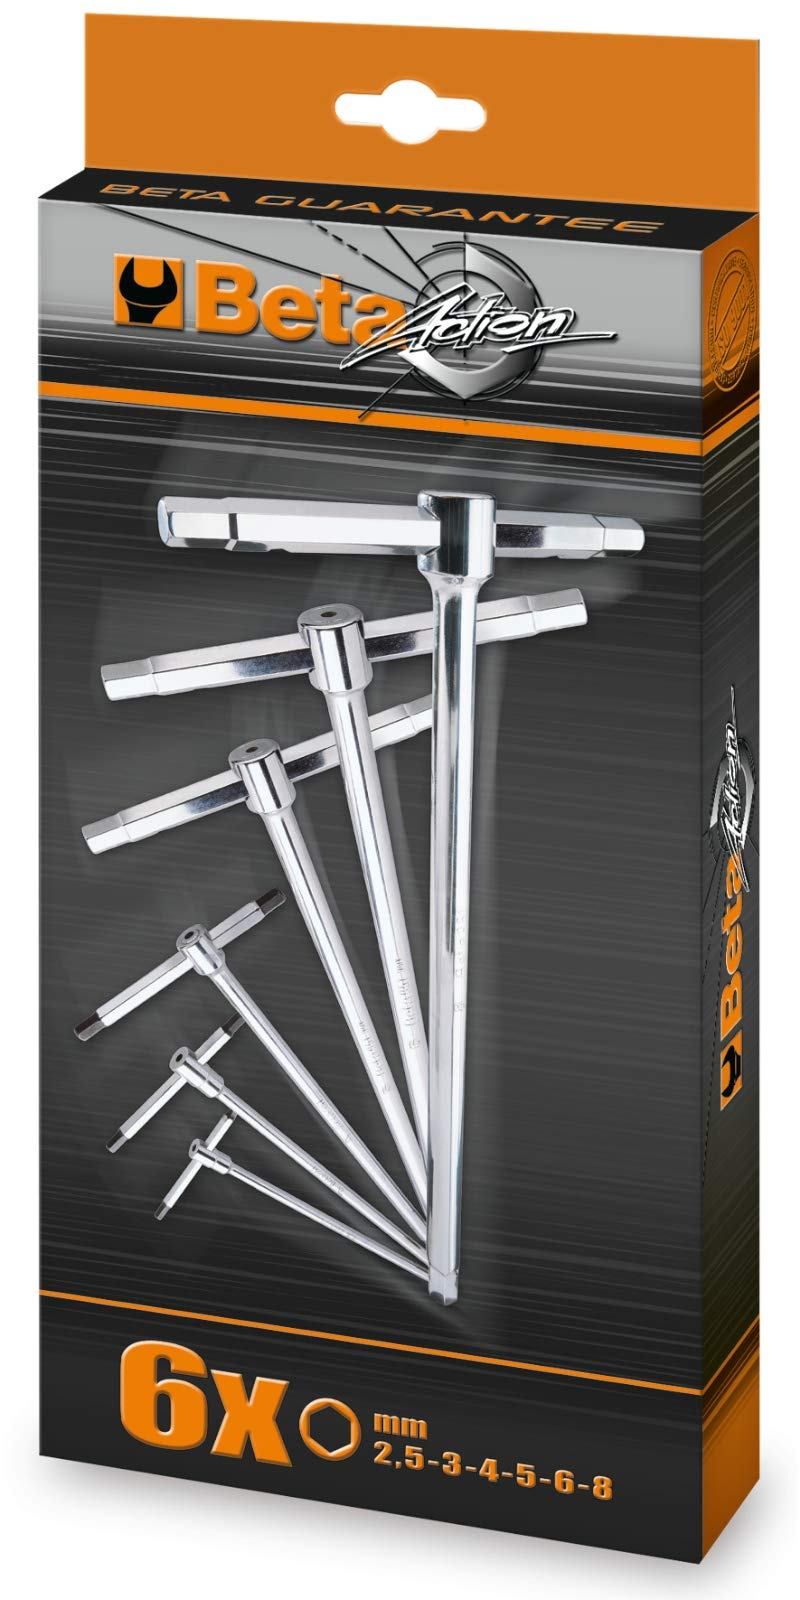 Beta 951/S6 T-handle Wrench Set with three hexagon male ends (Metric) by Beta